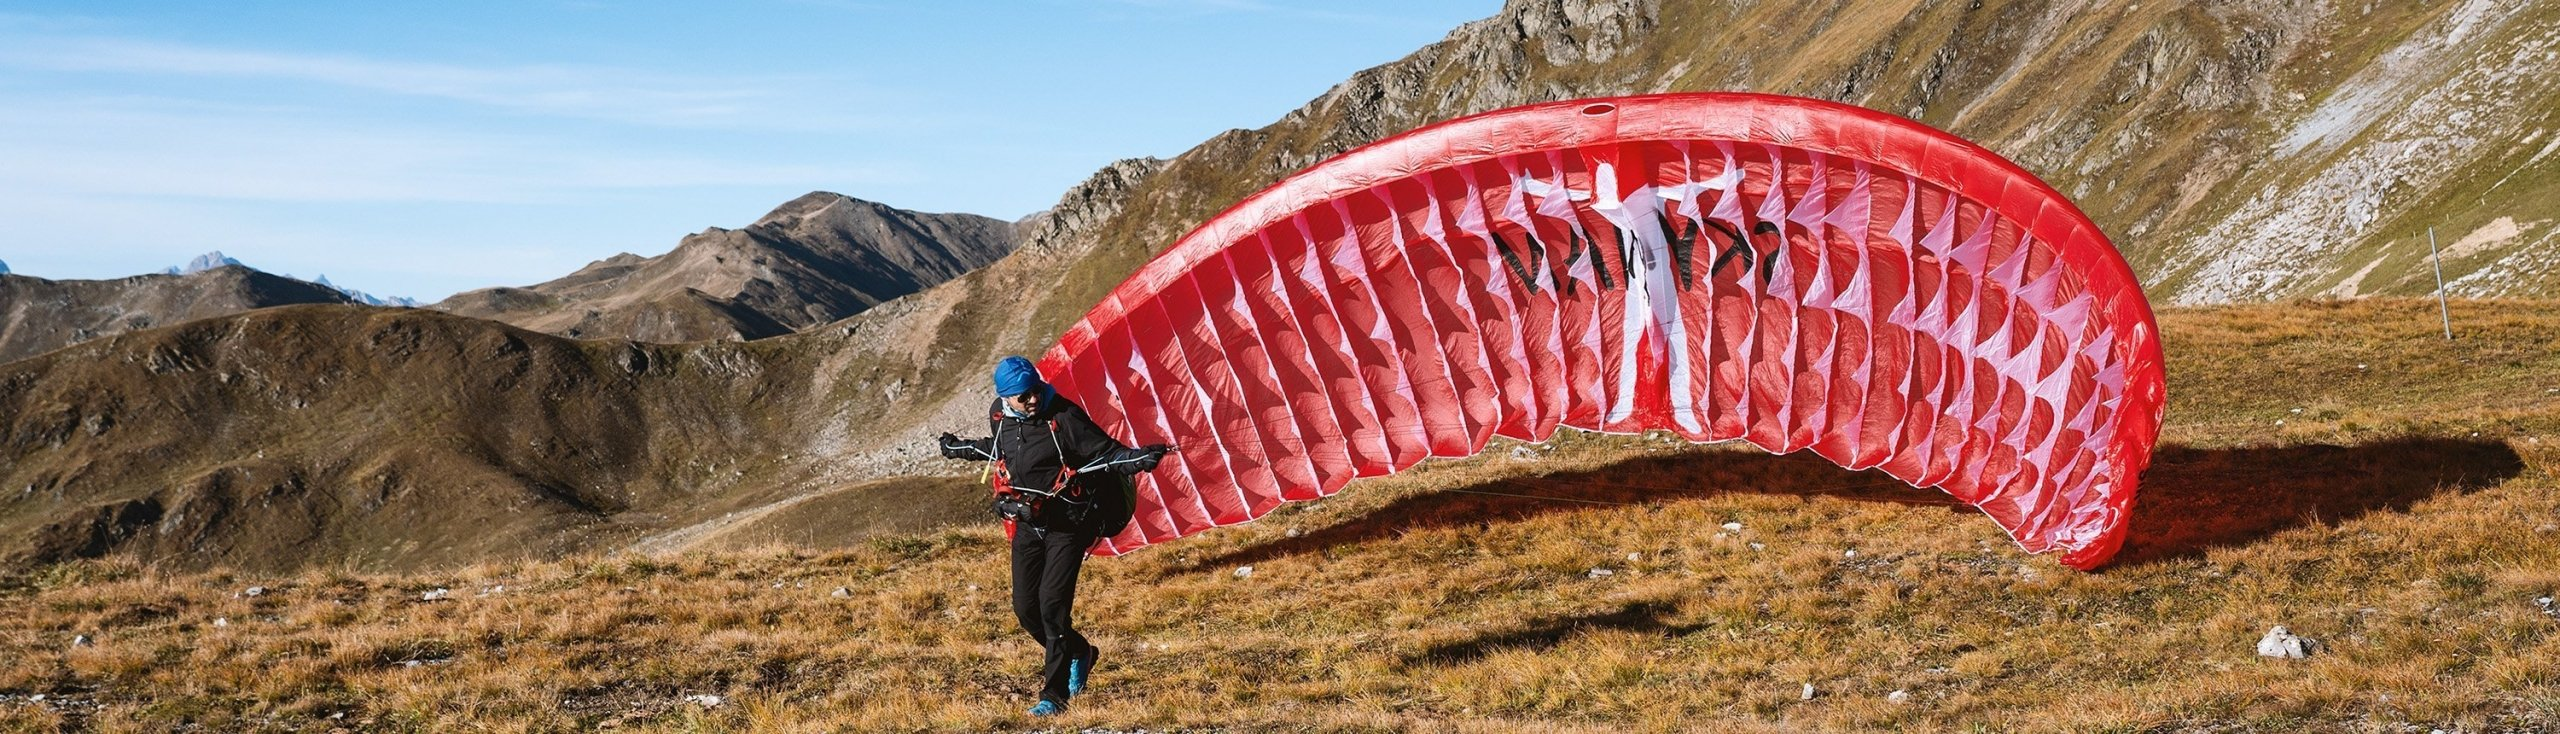 Hike and Fly from the Strelapass with the single skin paraglider Skyman Sir Edmund